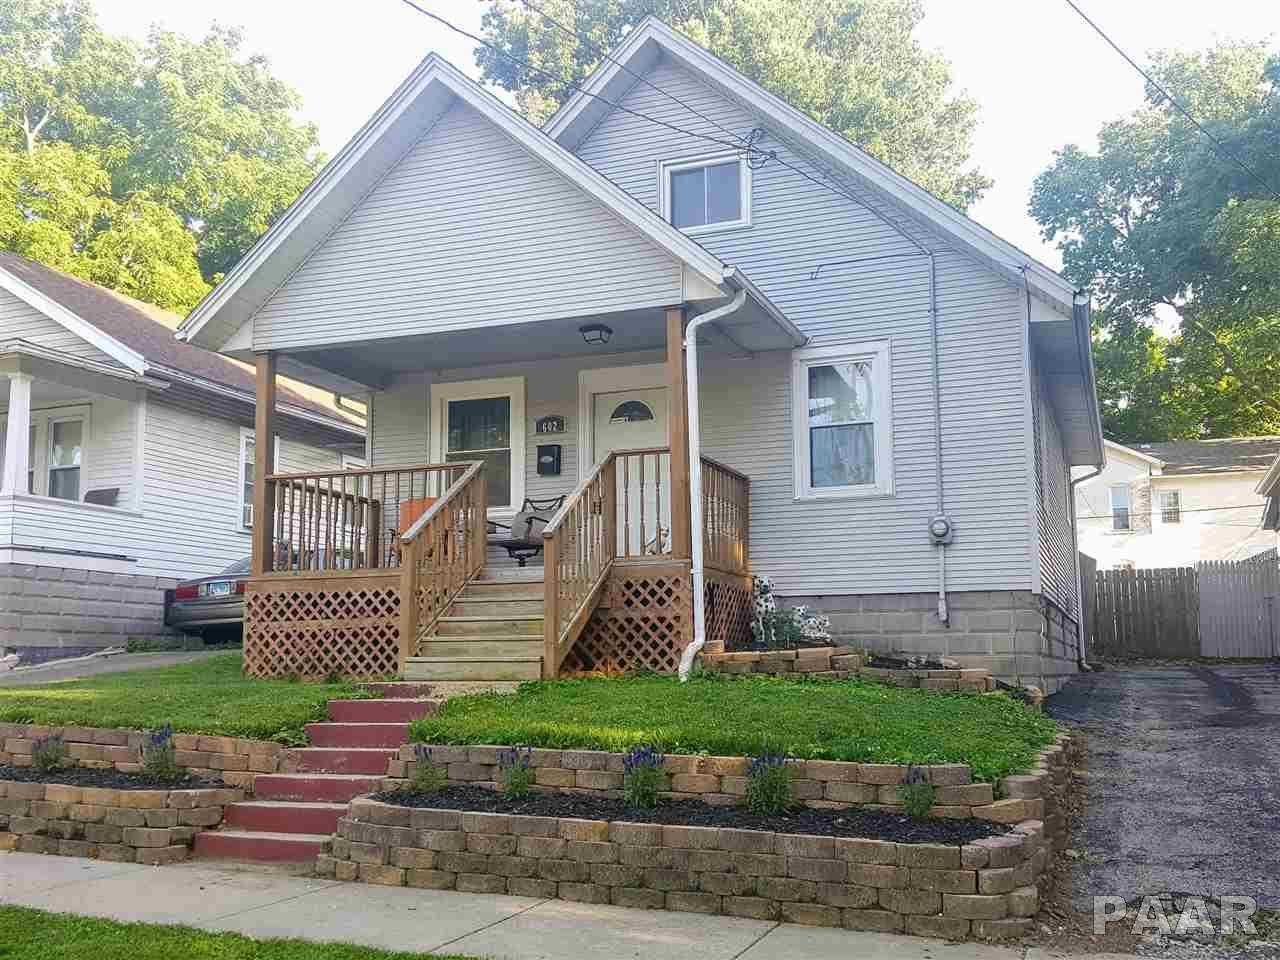 $48,000 - 2Br/1Ba -  for Sale in Forest Park, Peoria